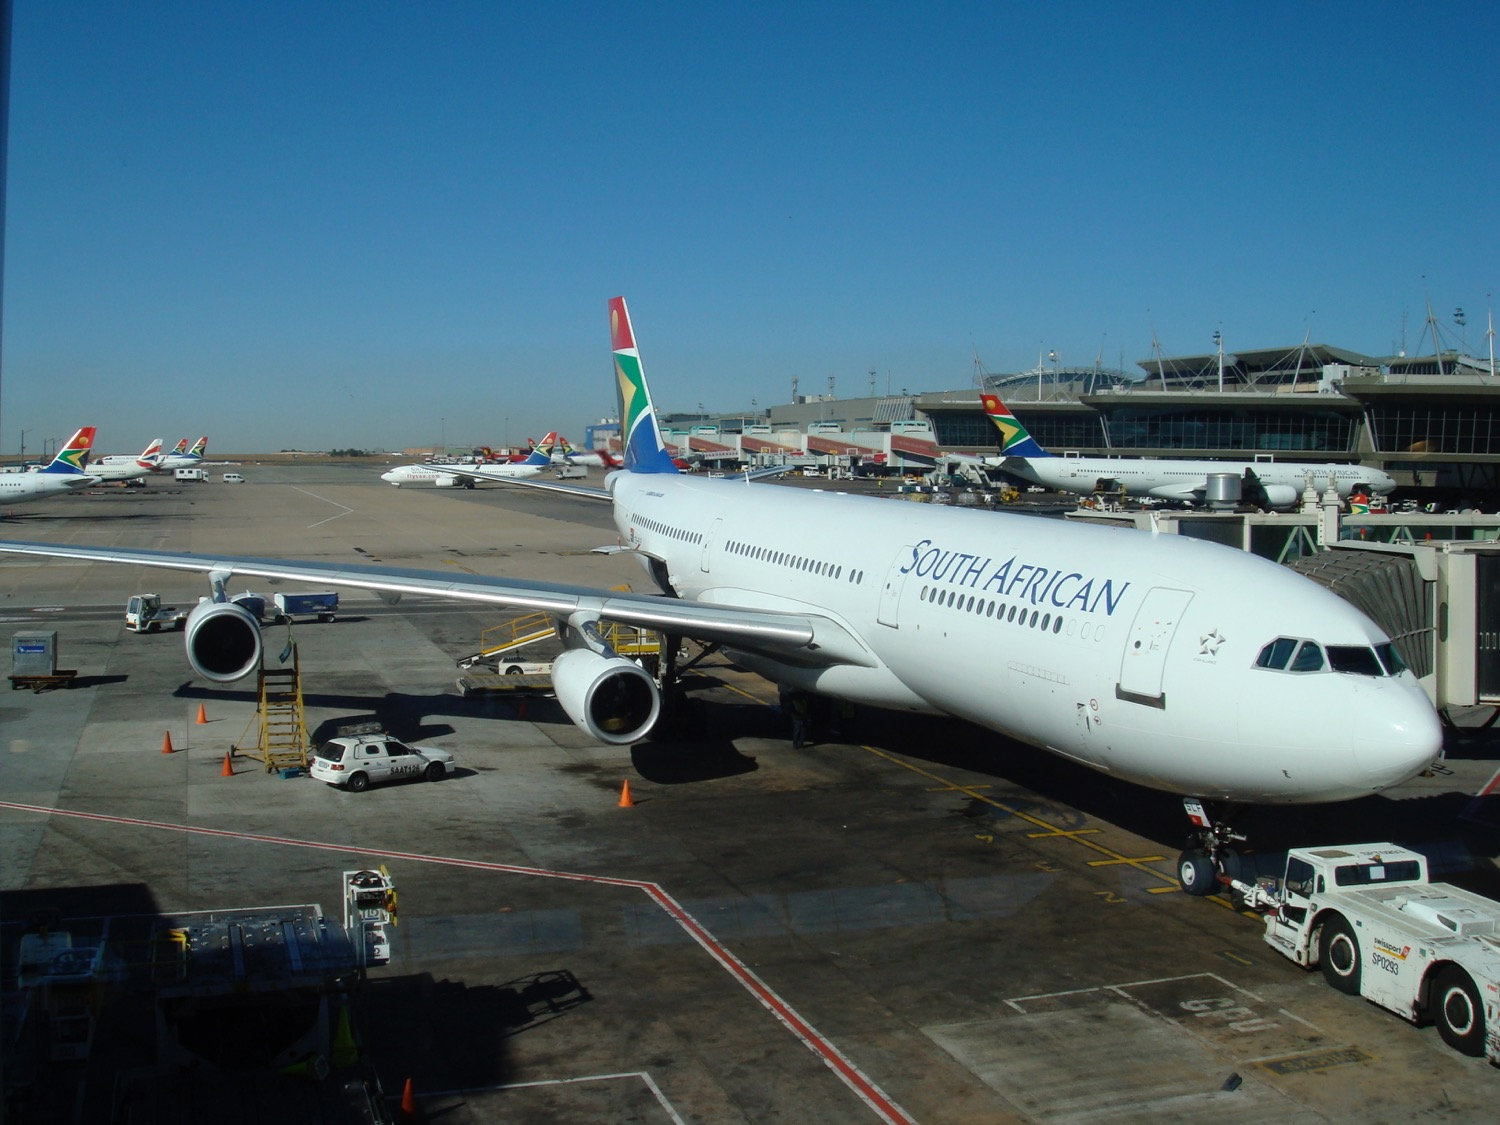 SAA resumes flight operation on International routes